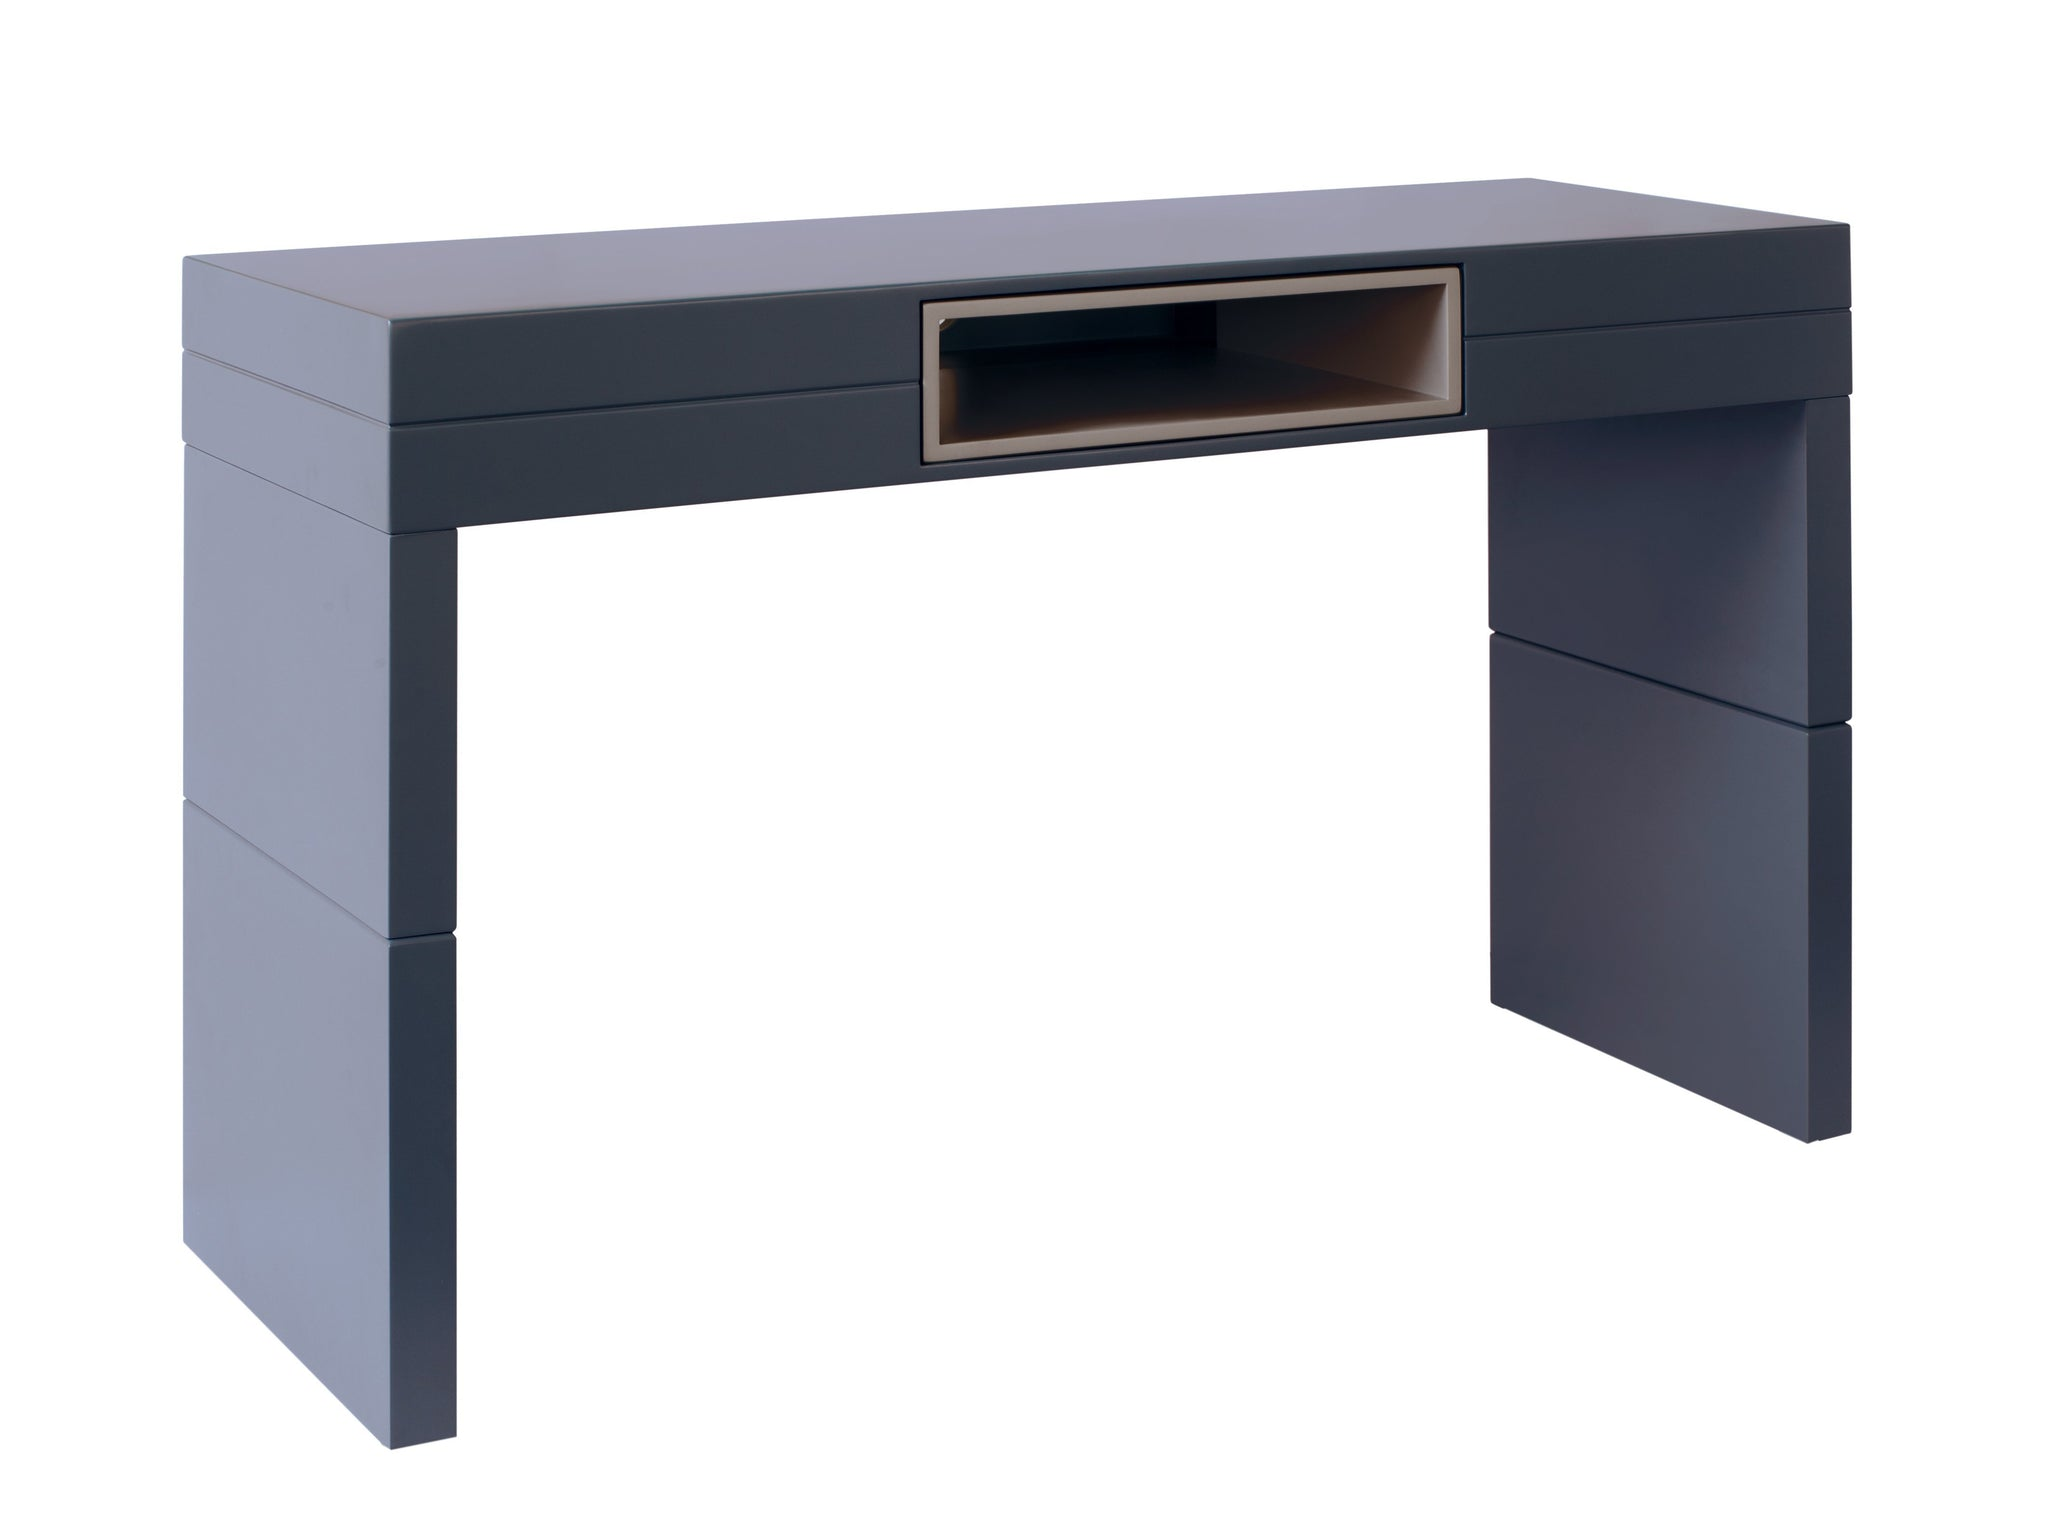 High Console table - Savoye GRAPHITE with STONE  accent